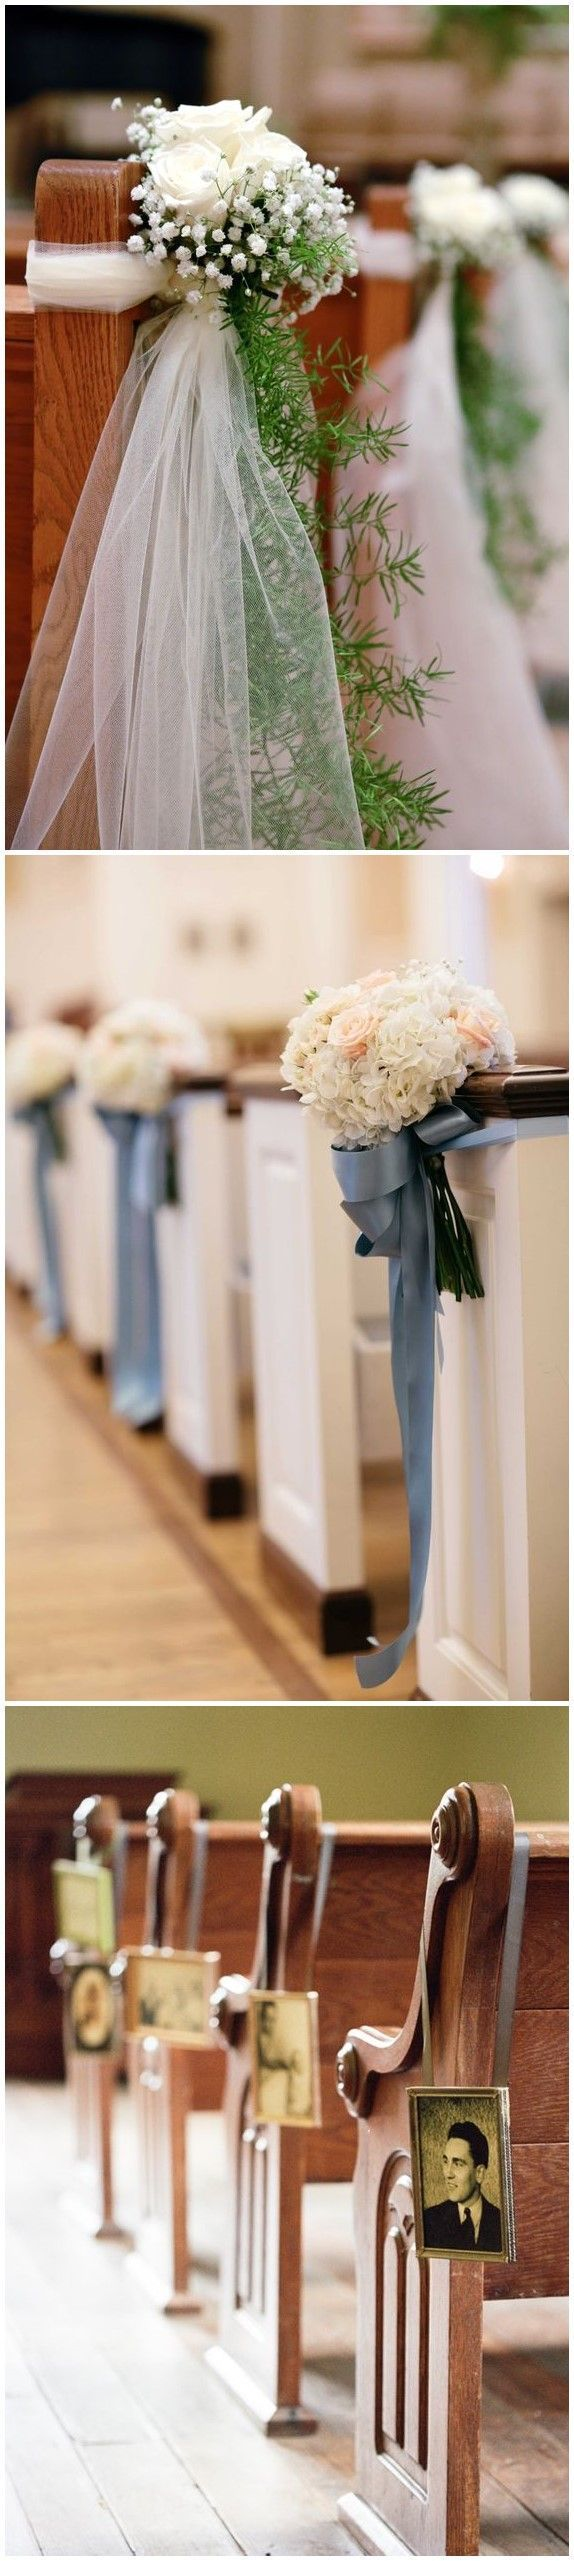 Best 25 outdoor wedding aisles ideas on pinterest outdoor wedding decorations 21 stunning church wedding aisle decoration ideas to steal see junglespirit Image collections